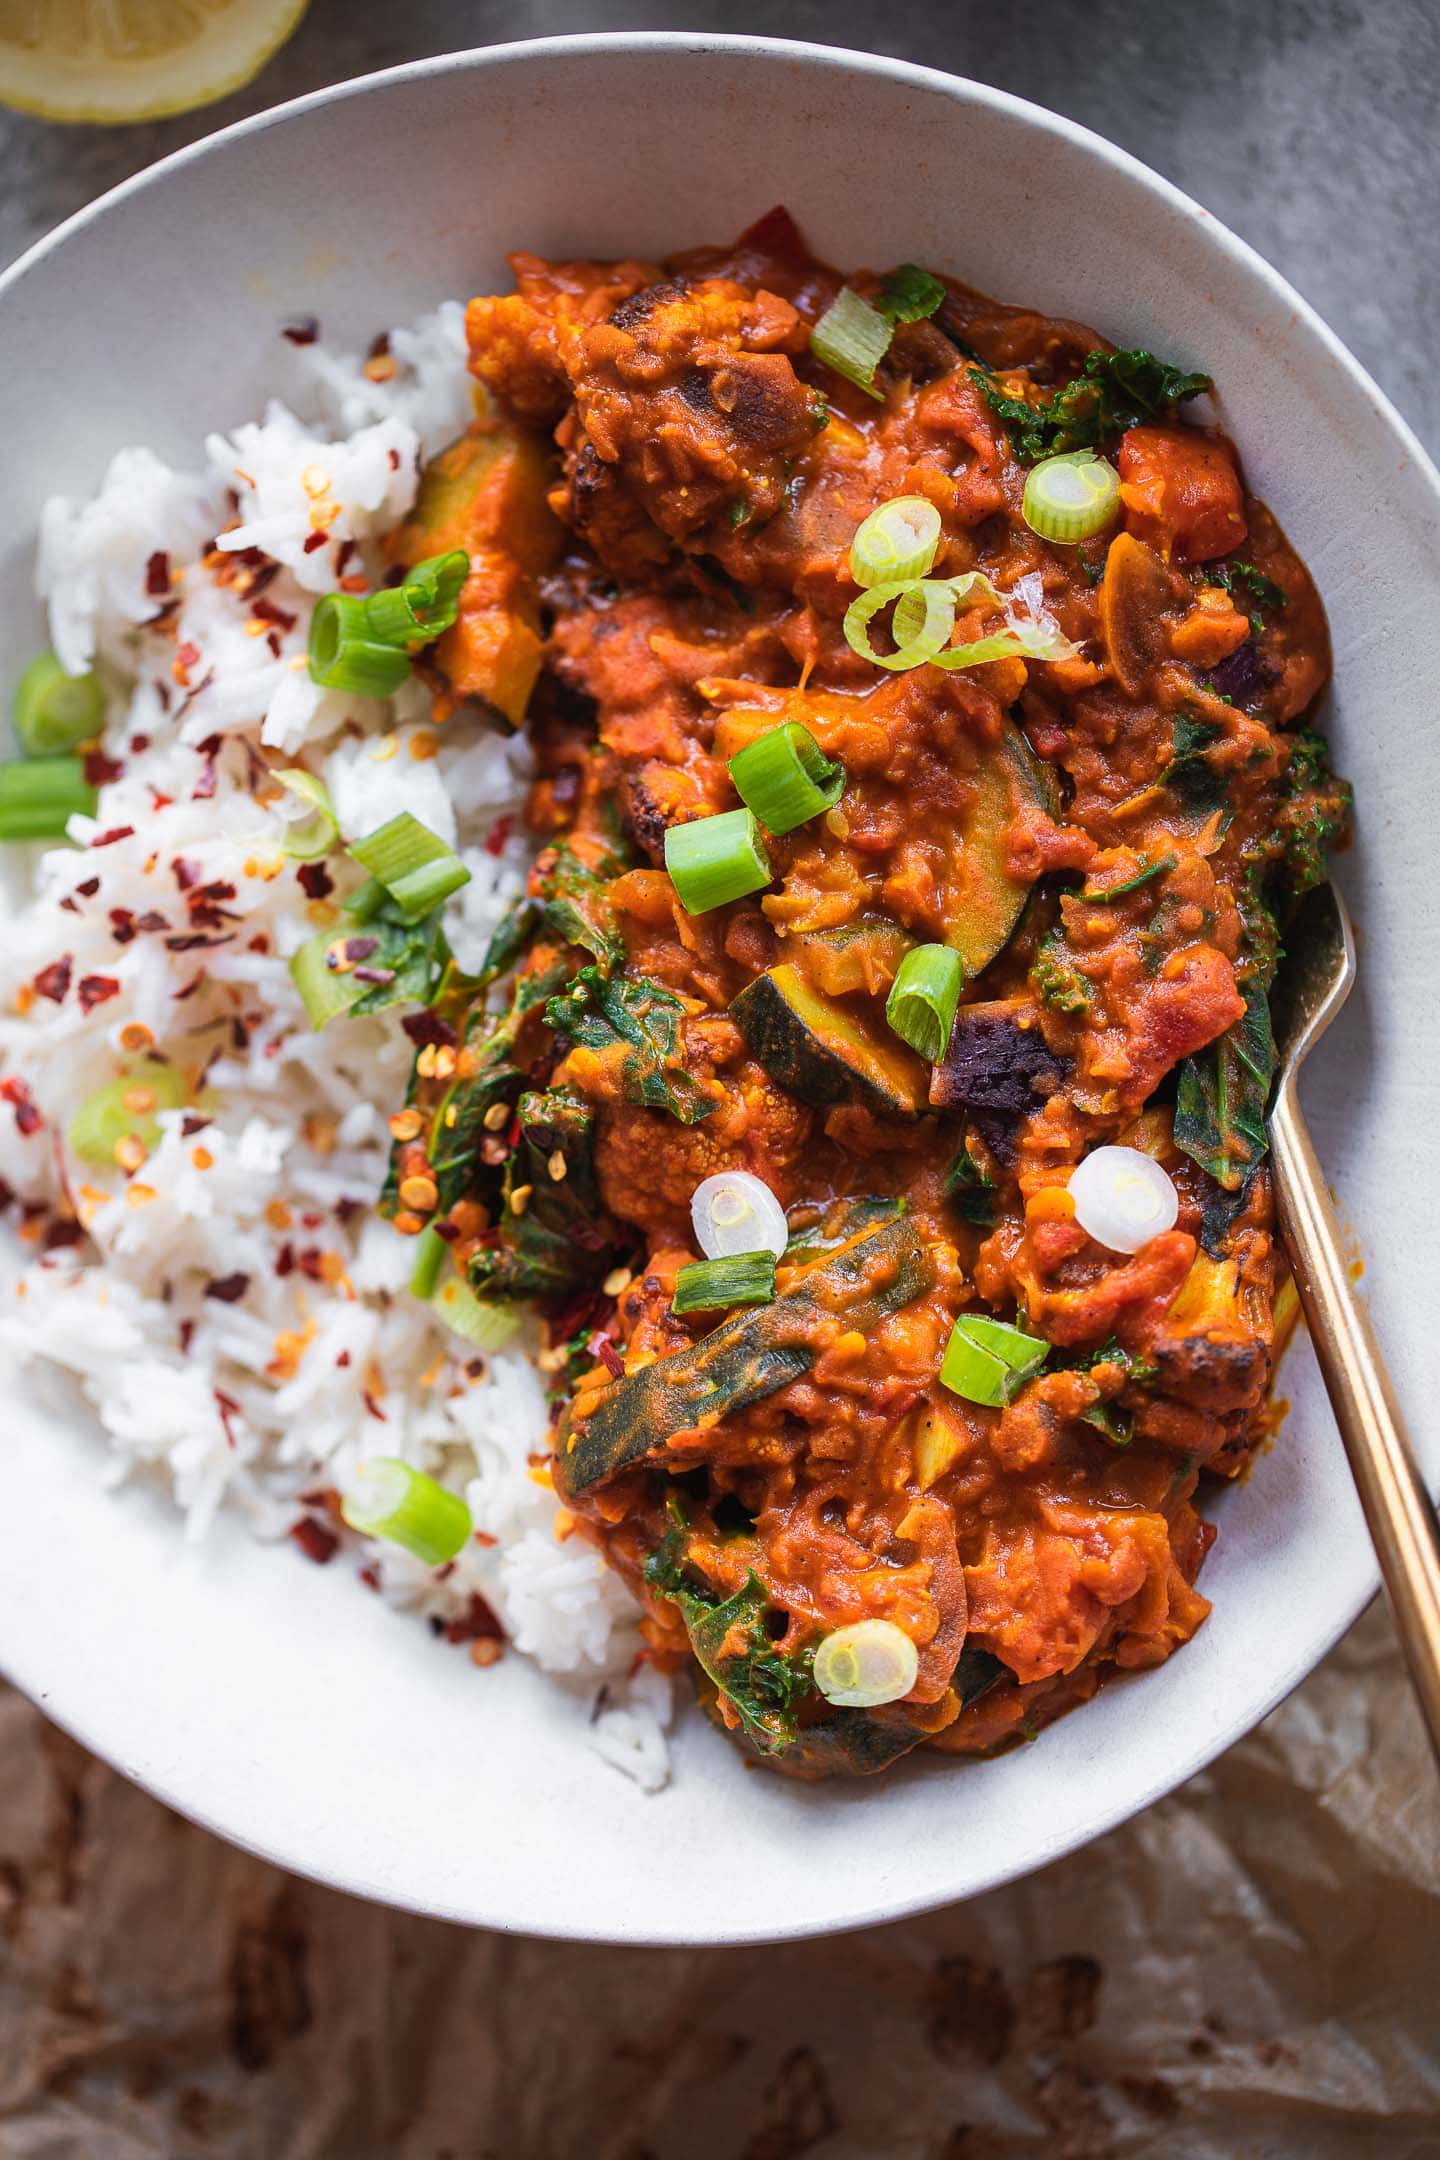 Bowl of vegan Dahl with red lentils and cauliflower